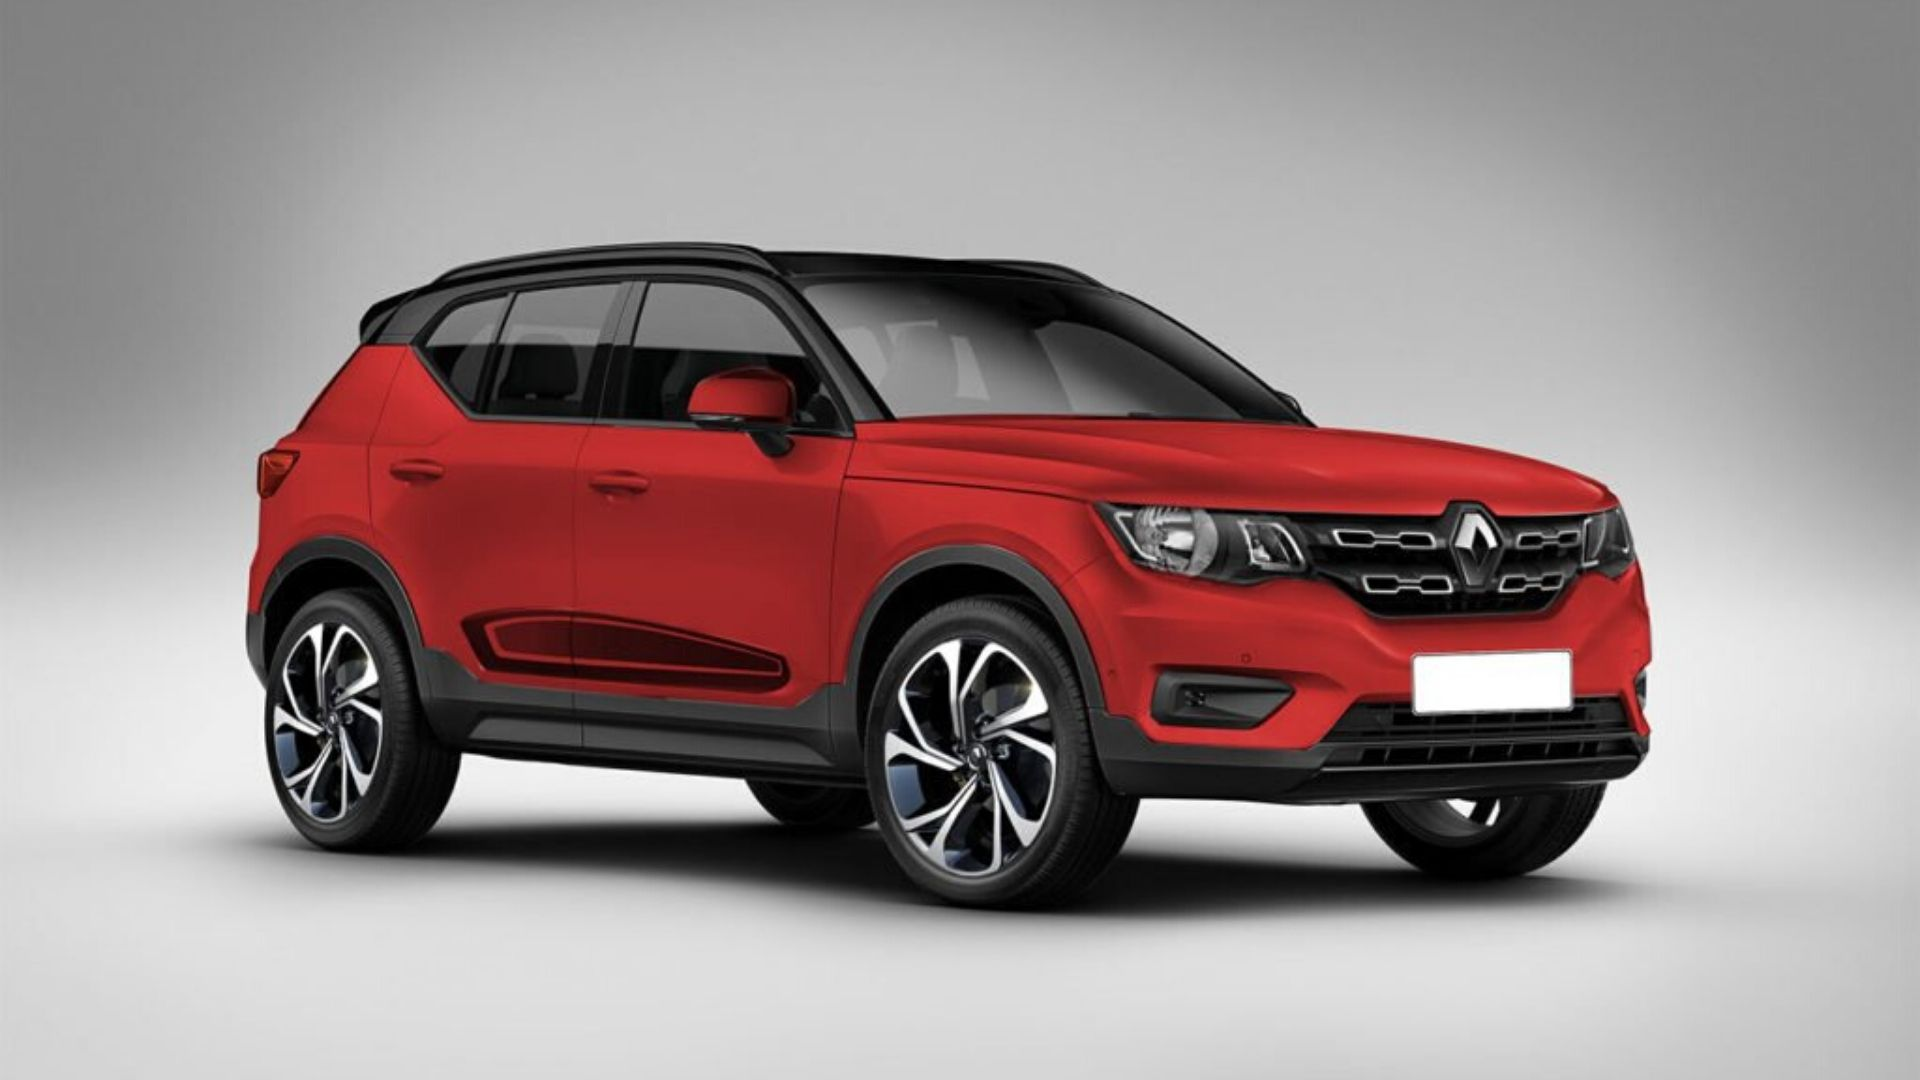 Renault Kiger SUV Top 5 Facts